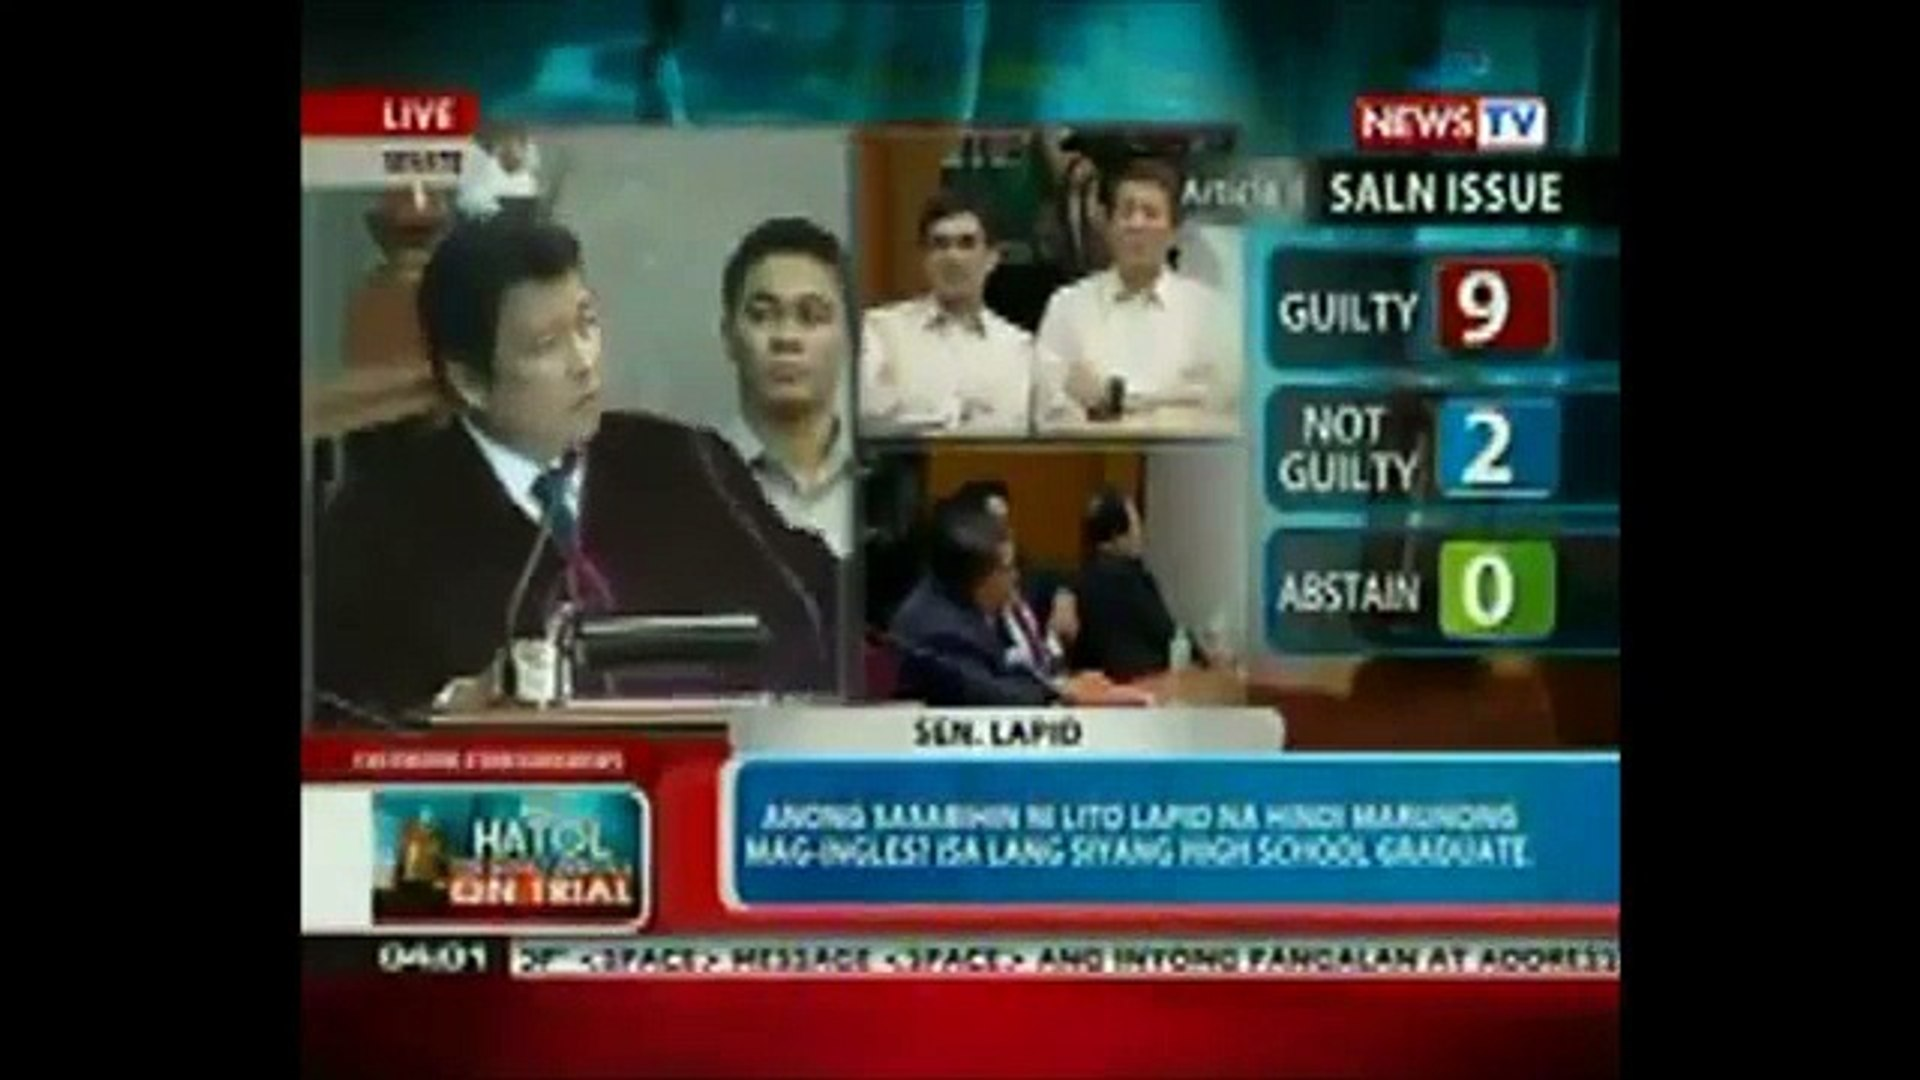 SEN. LITO LAPID VOTE #10 CJ CORONA GUILTY! KONSENSYA ANG GAMIT KO. CLEARLY CORONA BROKE THE LAW